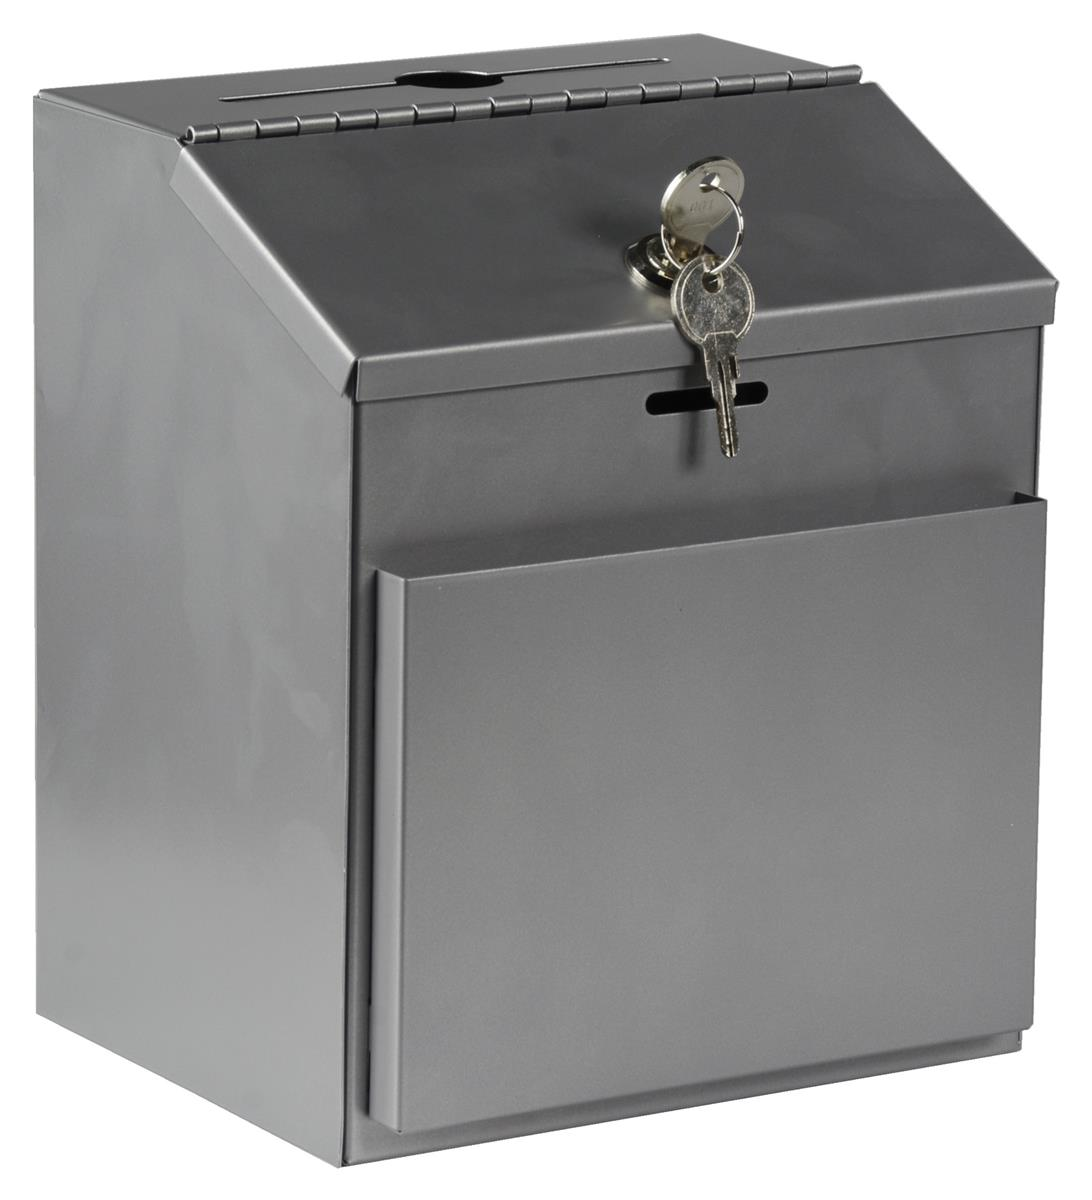 Wall Mounted Fixture Box : Metal Collection Box Keyed Lock - Wall Mount/Countertop Fixture